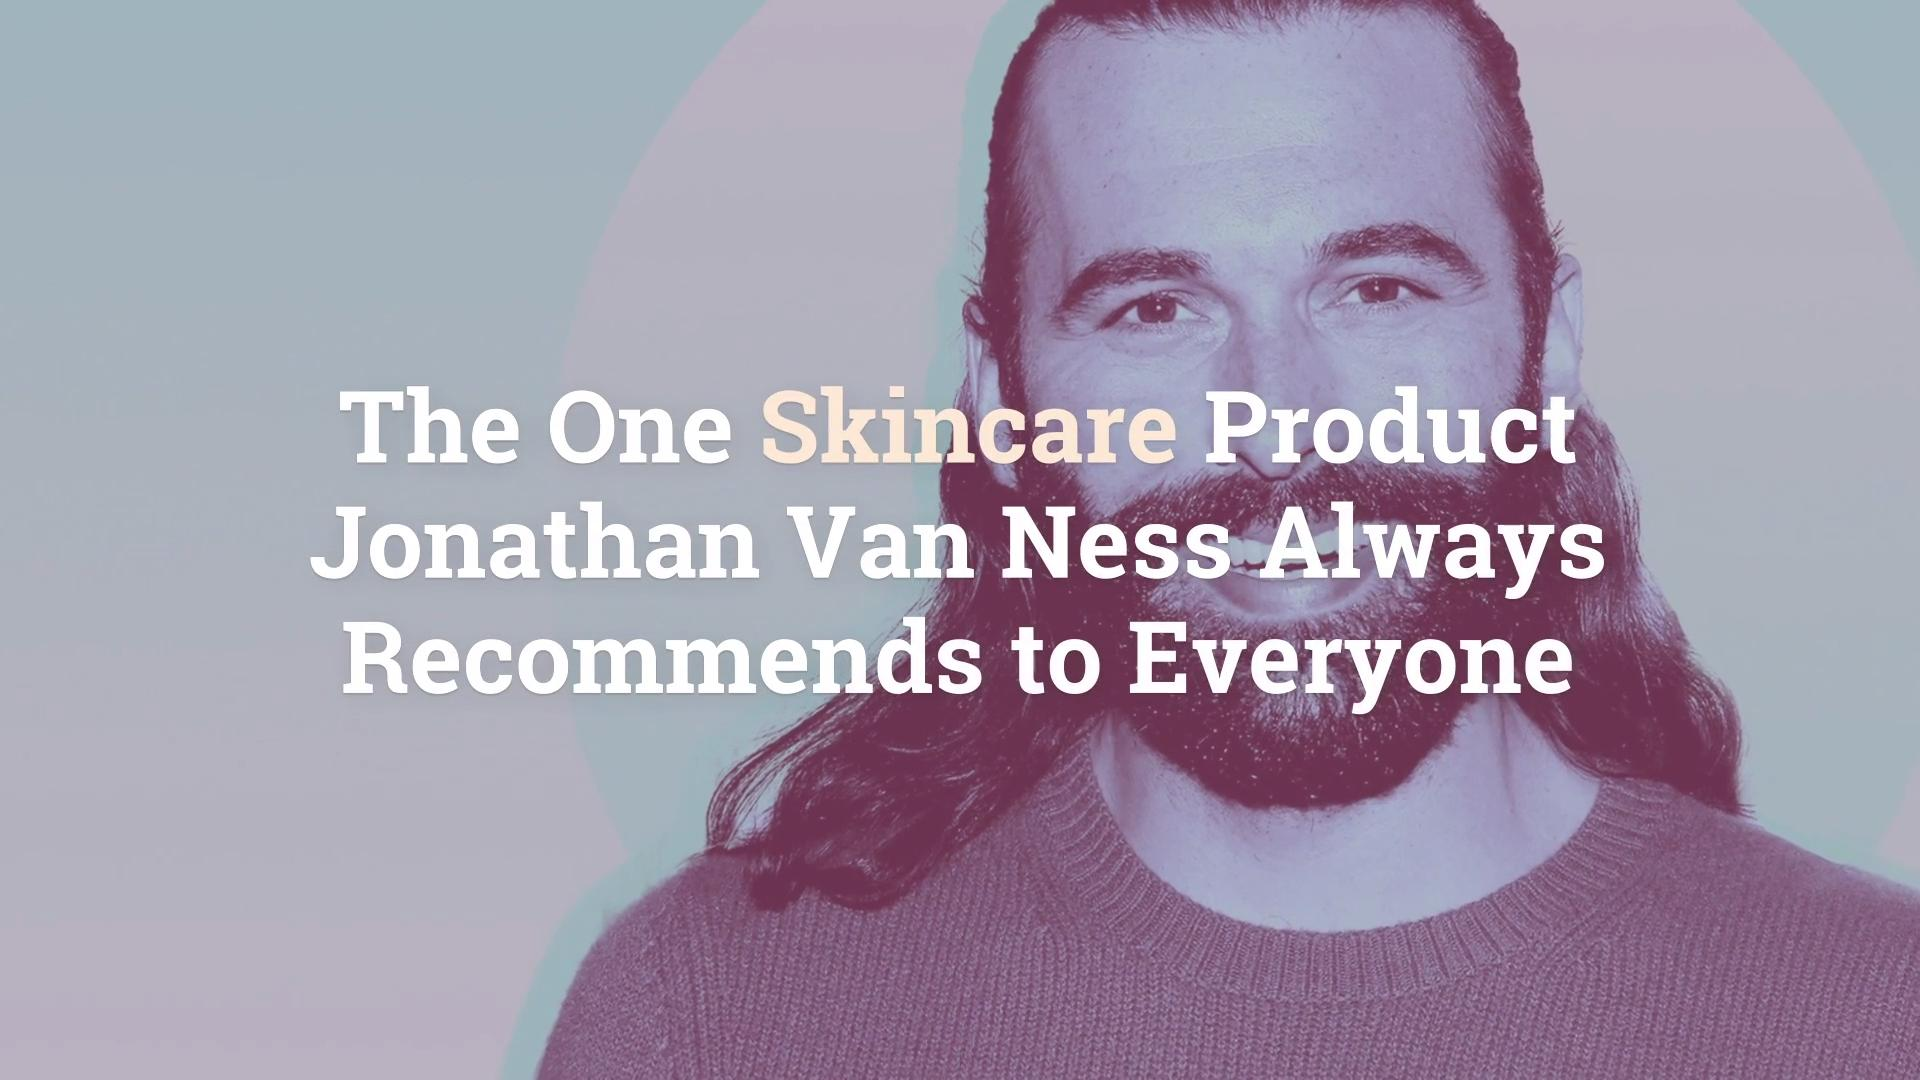 The One Skincare Product Jonathan Van Ness Always Recommends to Everyone